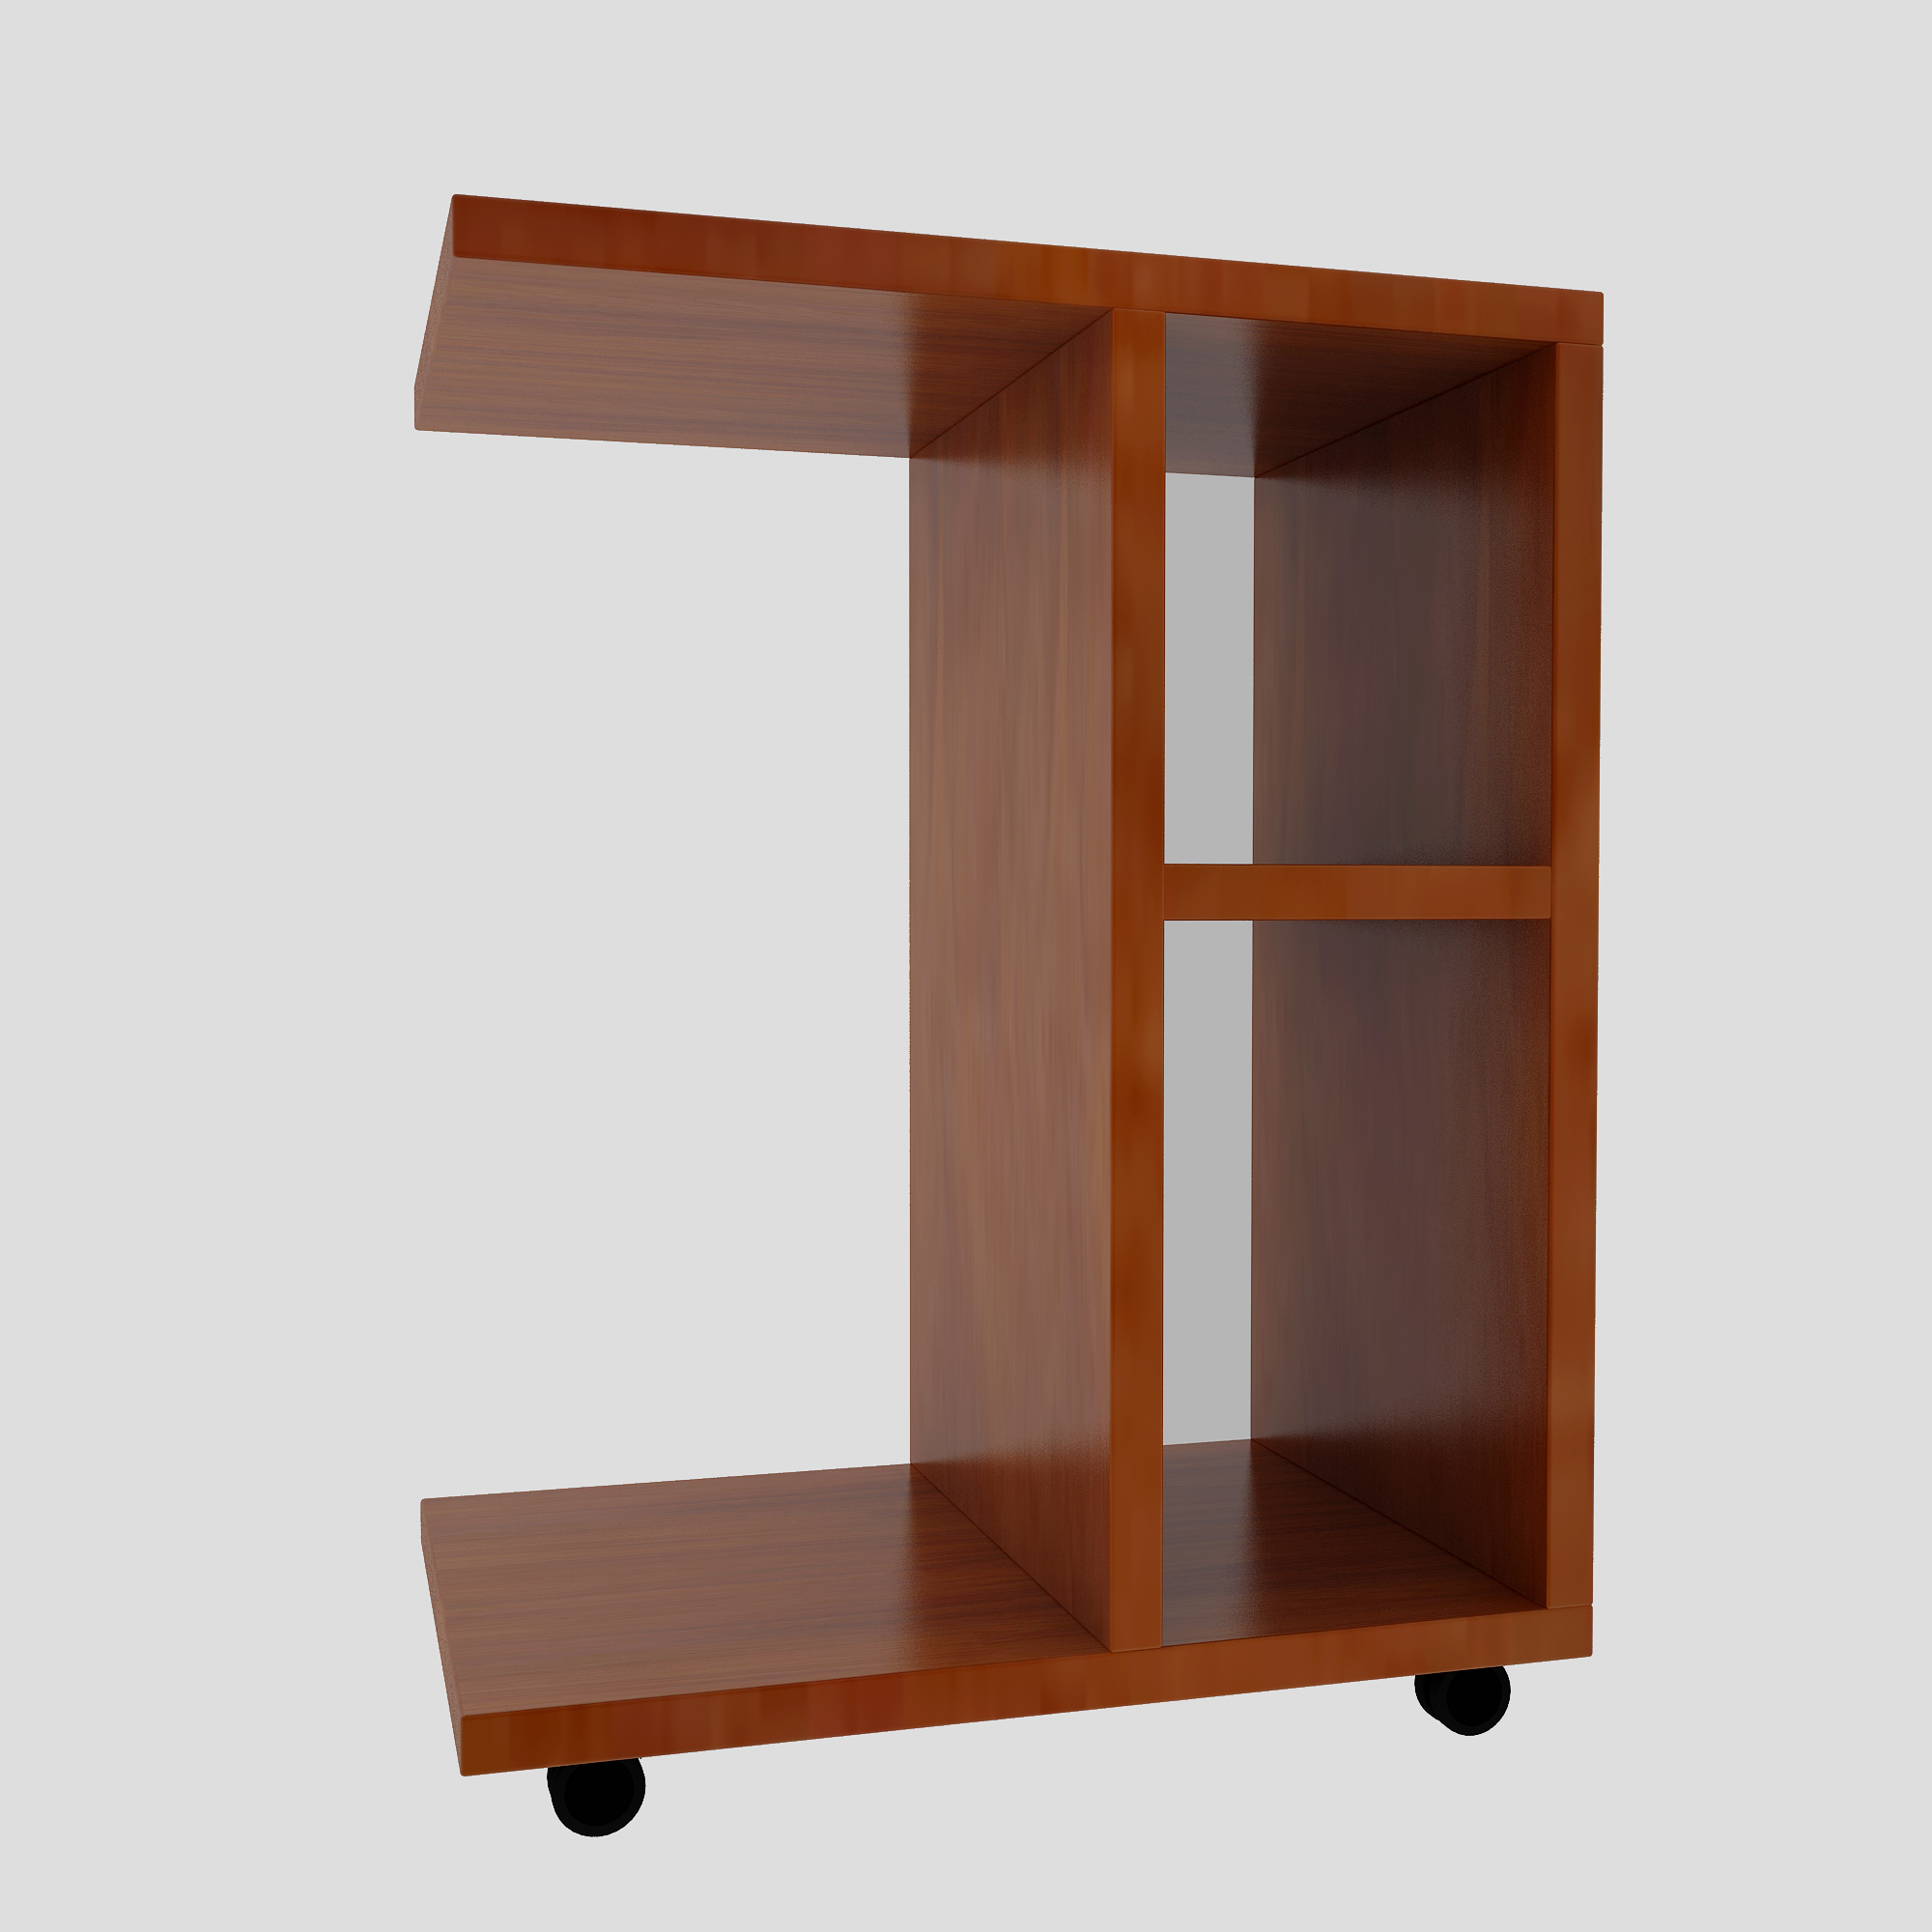 2B Modern Living Room Sofa Corner Coffee Table Imitation Wood Side Cabinets Bedside Coffee Table